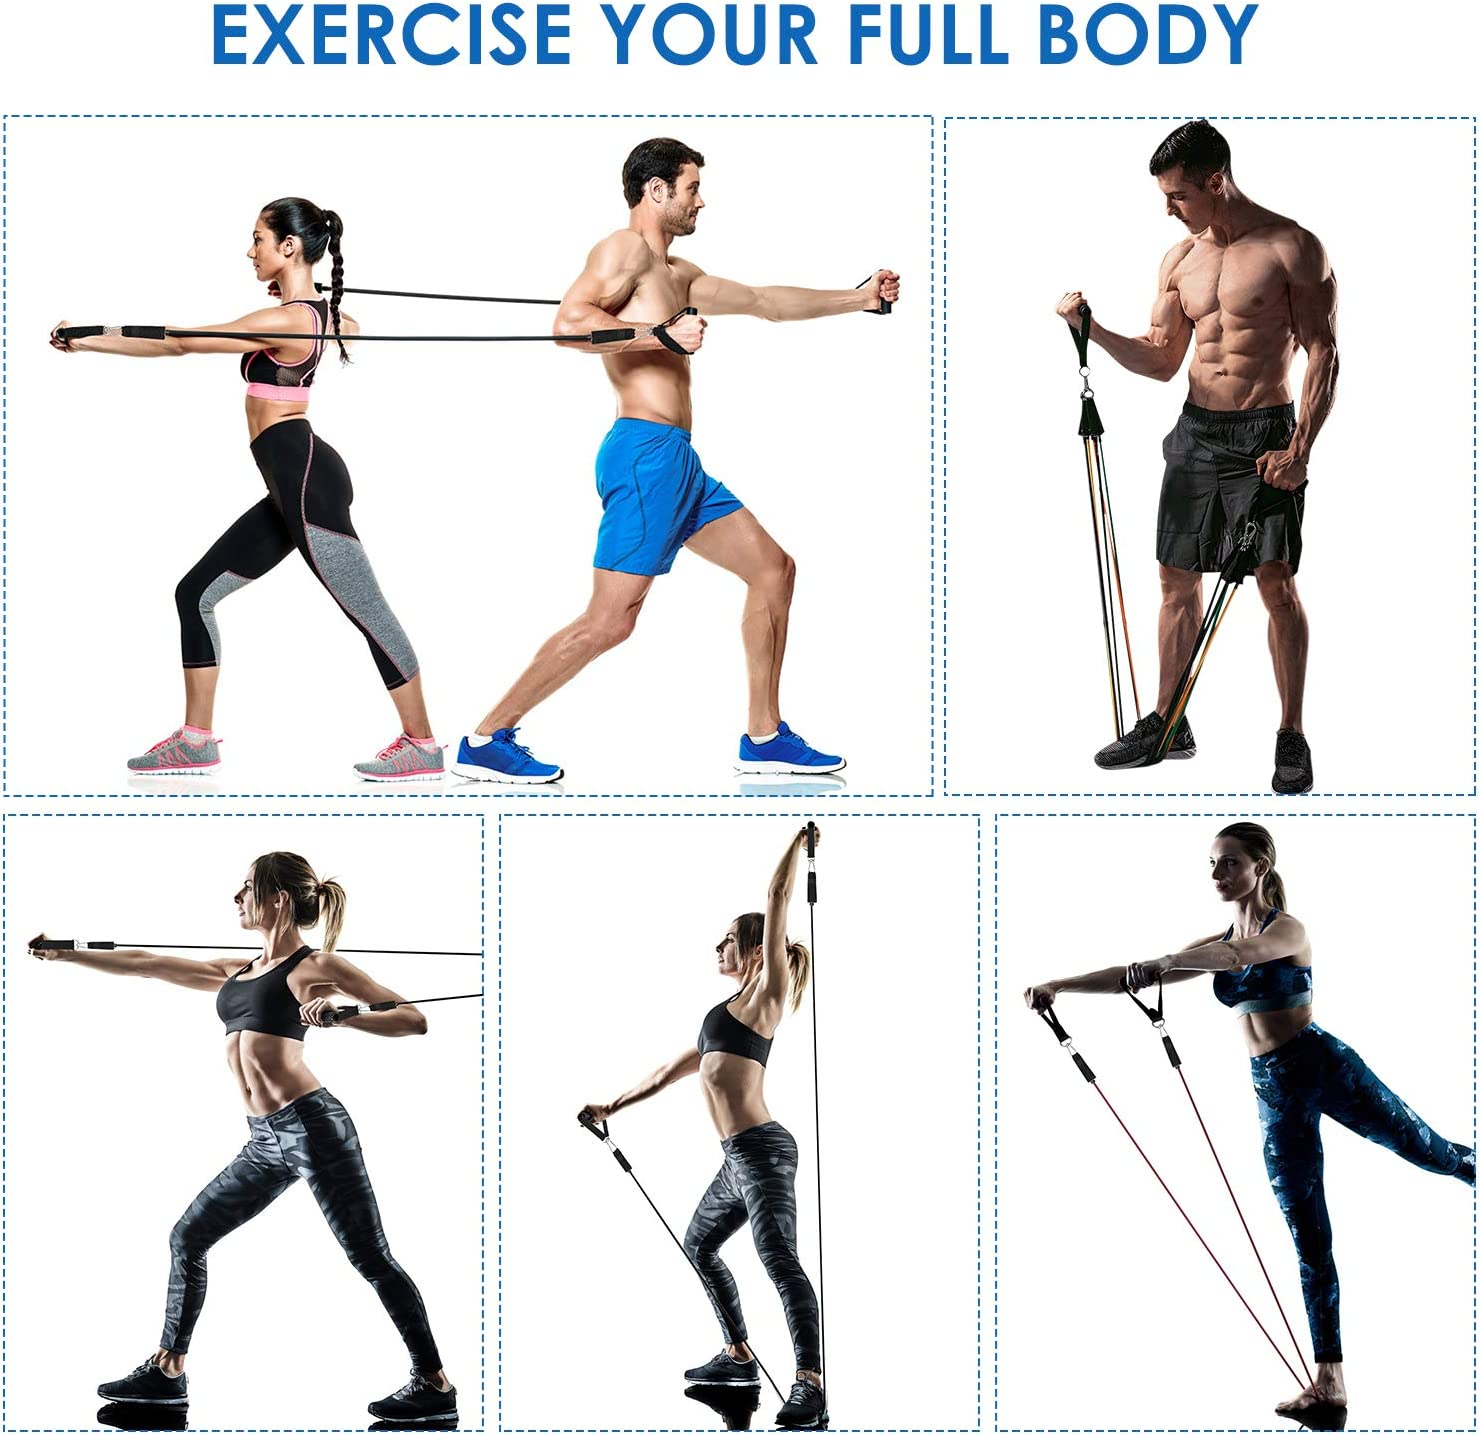 Legs Ankle Straps for Resistance Training Exercise Bands with Handles Physical Therapy Fitness Bands Home Gym Equipment for Women Men Carry Bag Resistance Bands Set Workout Bands with Door Anchor